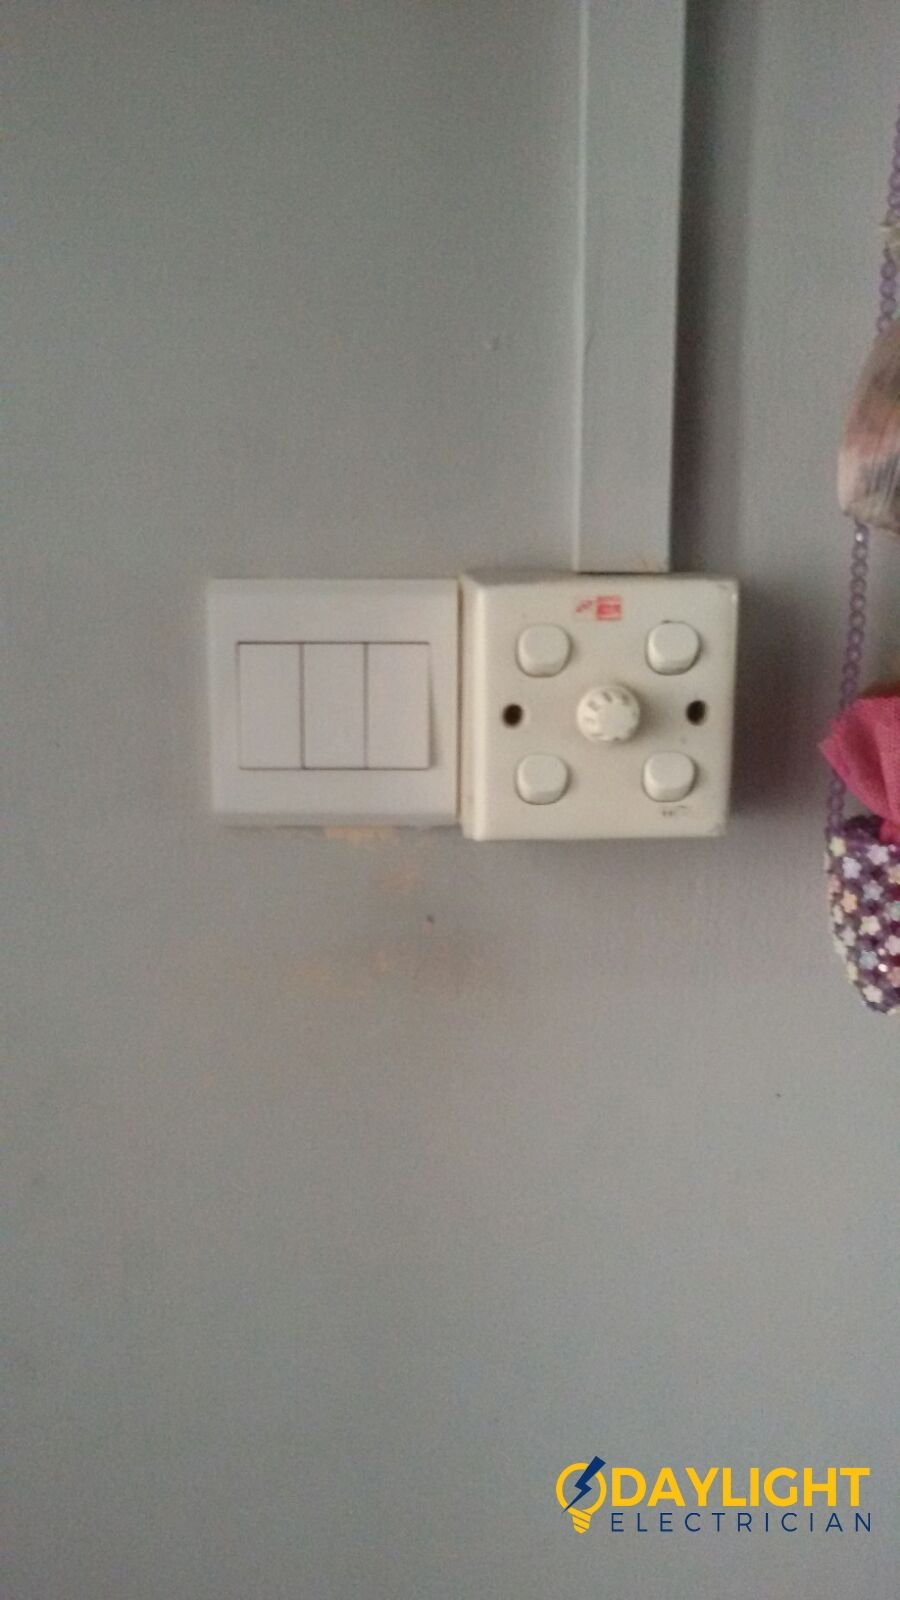 Replace Light Switch Electrician Singapore Bedok Hdb Electrician Singapore Recommended Electrician Services Singapore Replace Light Switch Light Switch Electrician Services